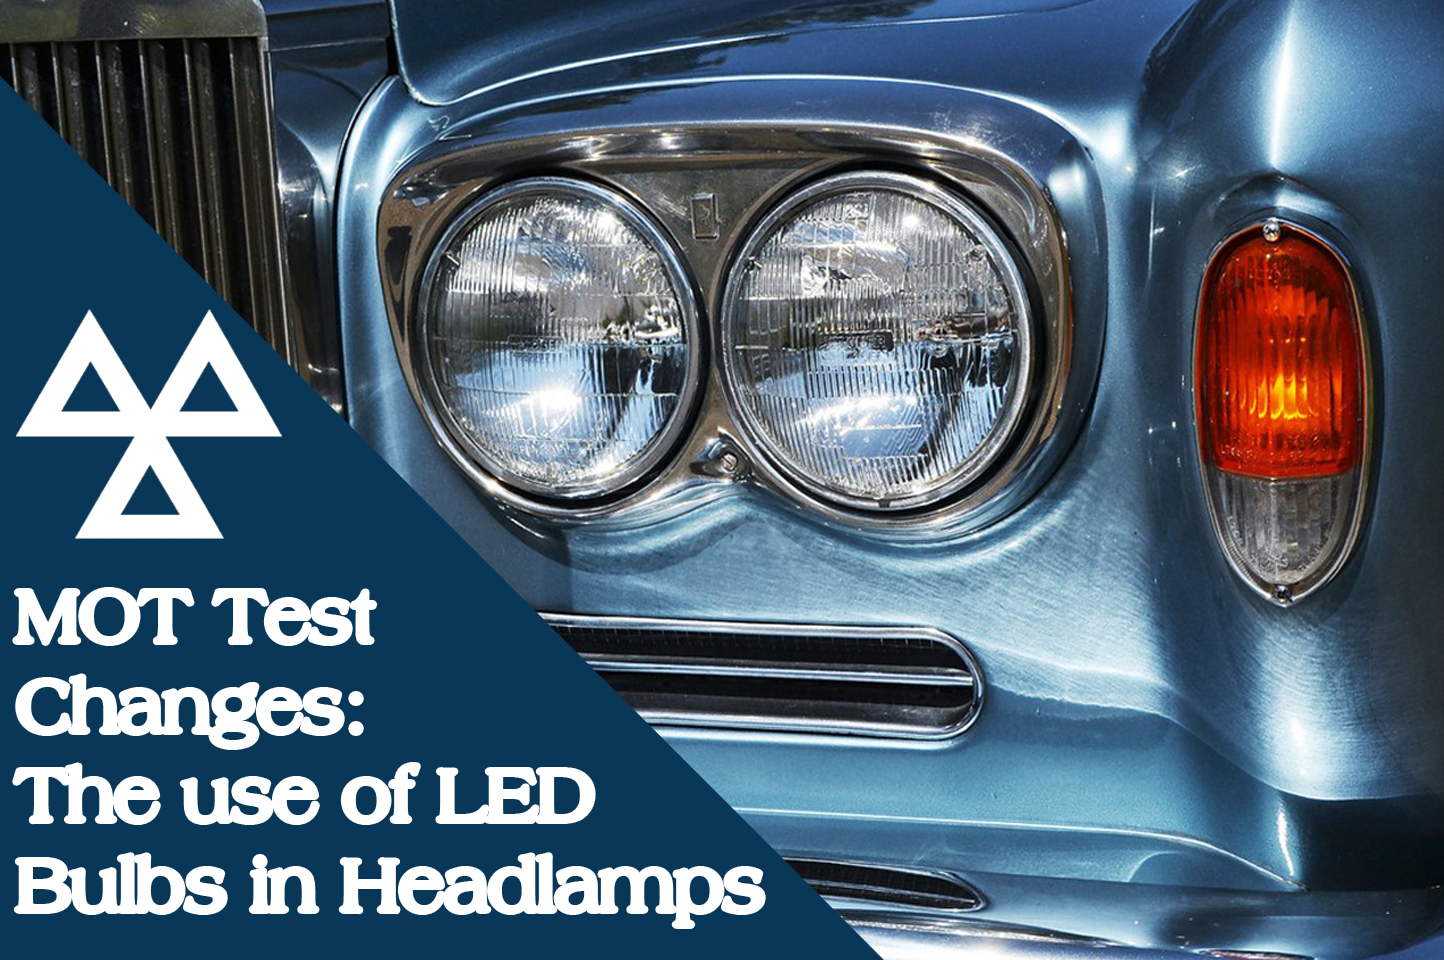 MOT test changes: New headlamp rules could see classic car owners issued an instant fail